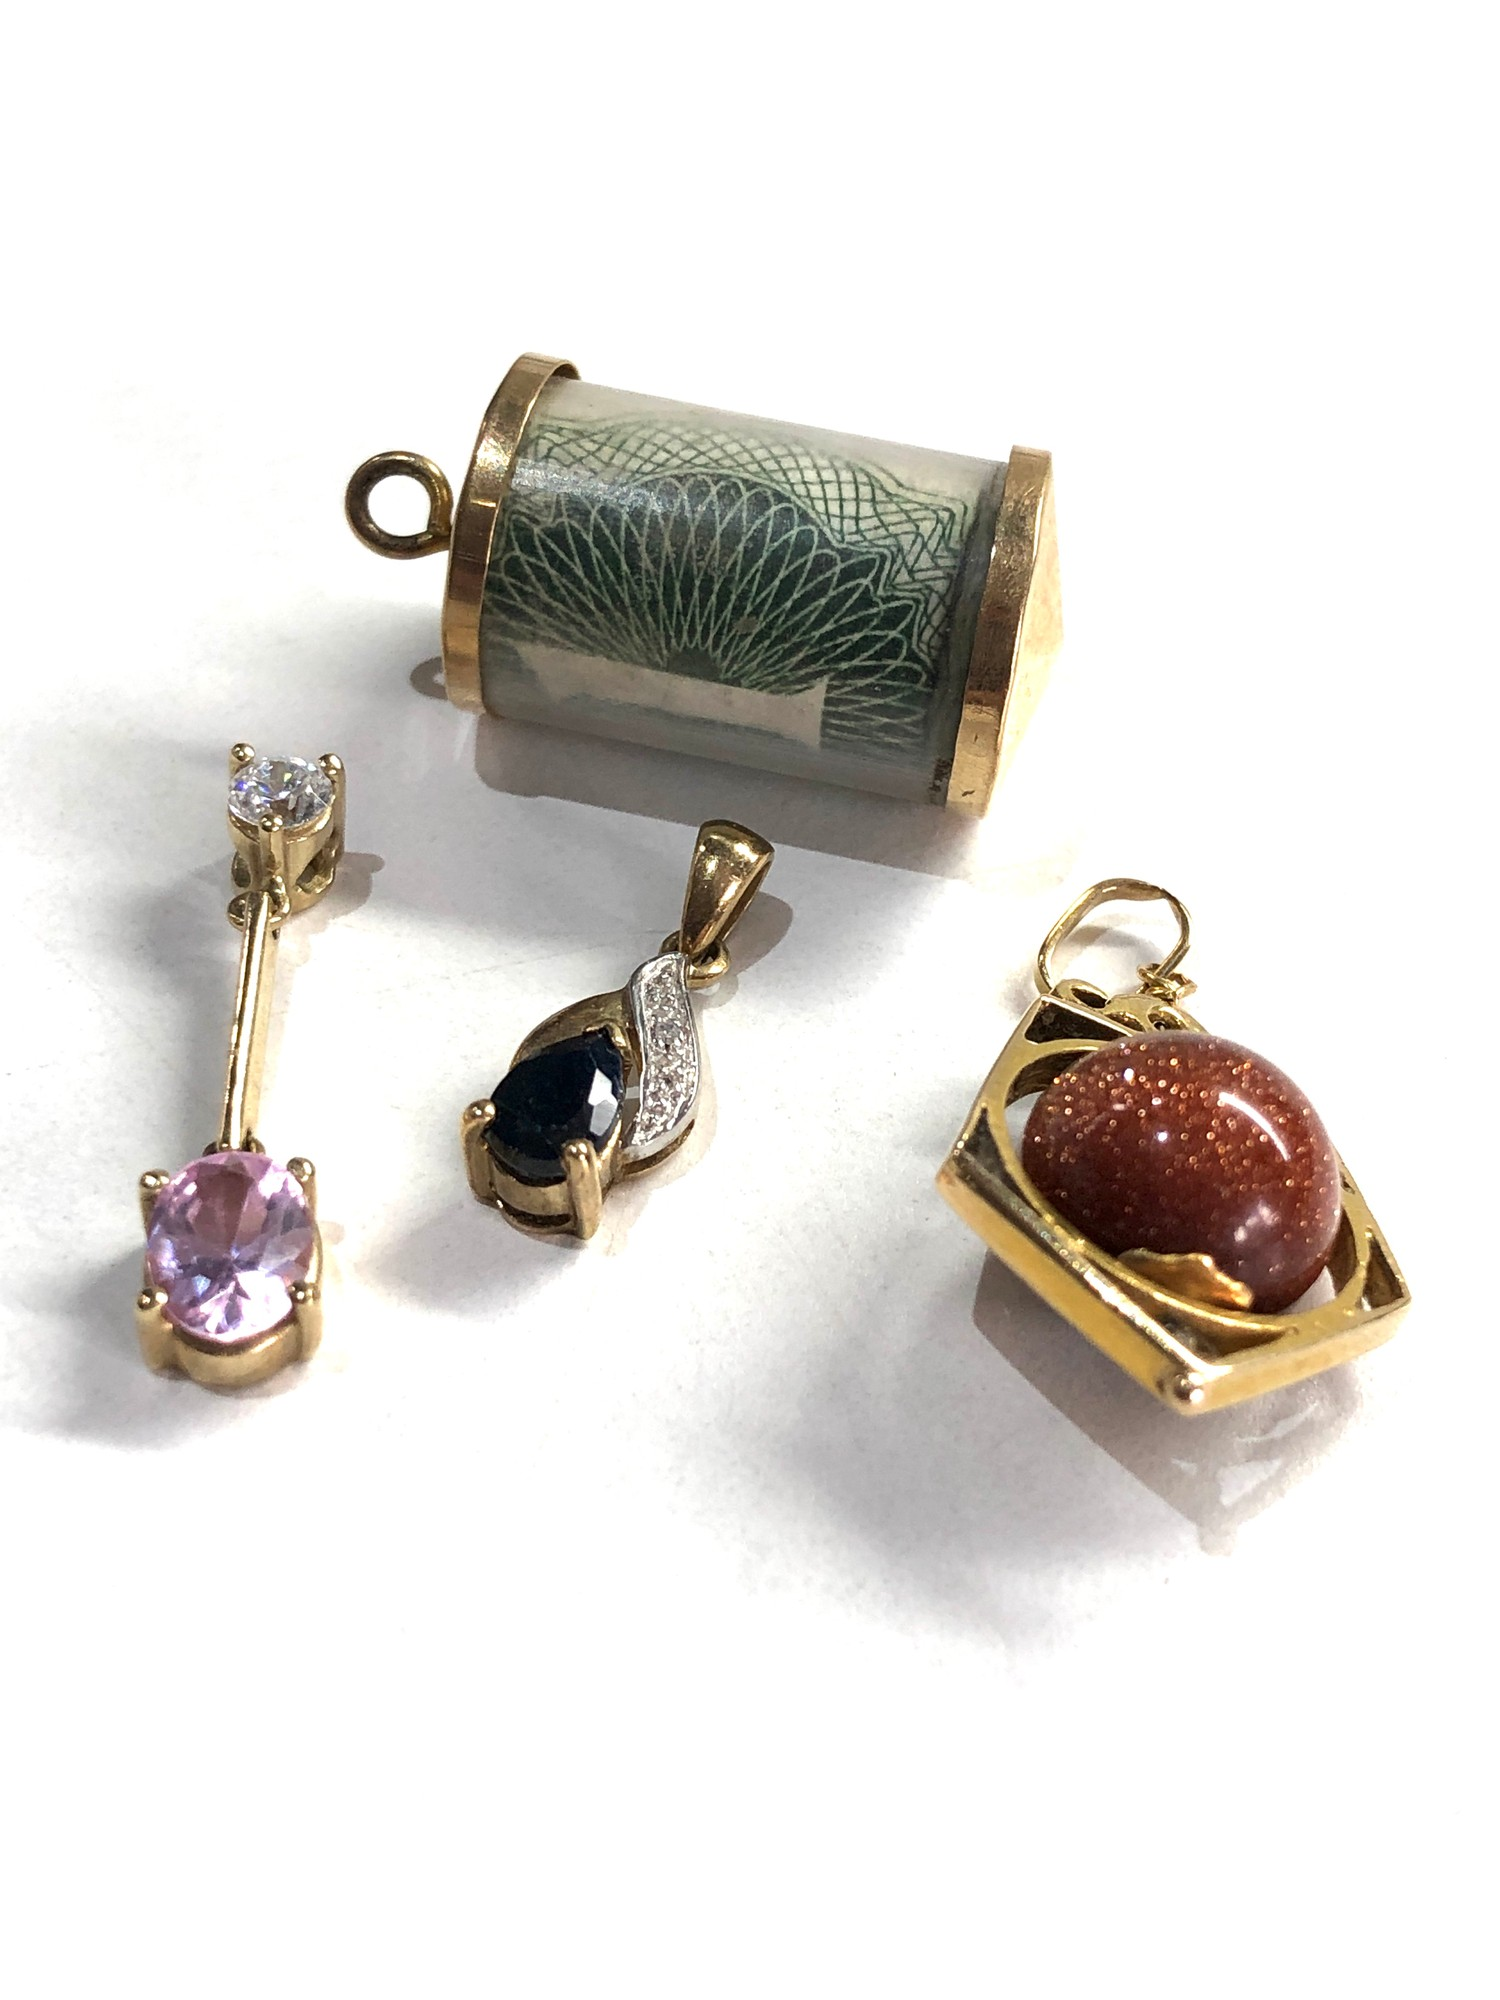 4 x 9ct gold pendants, goldstone charm and one pound note charm - Image 2 of 2